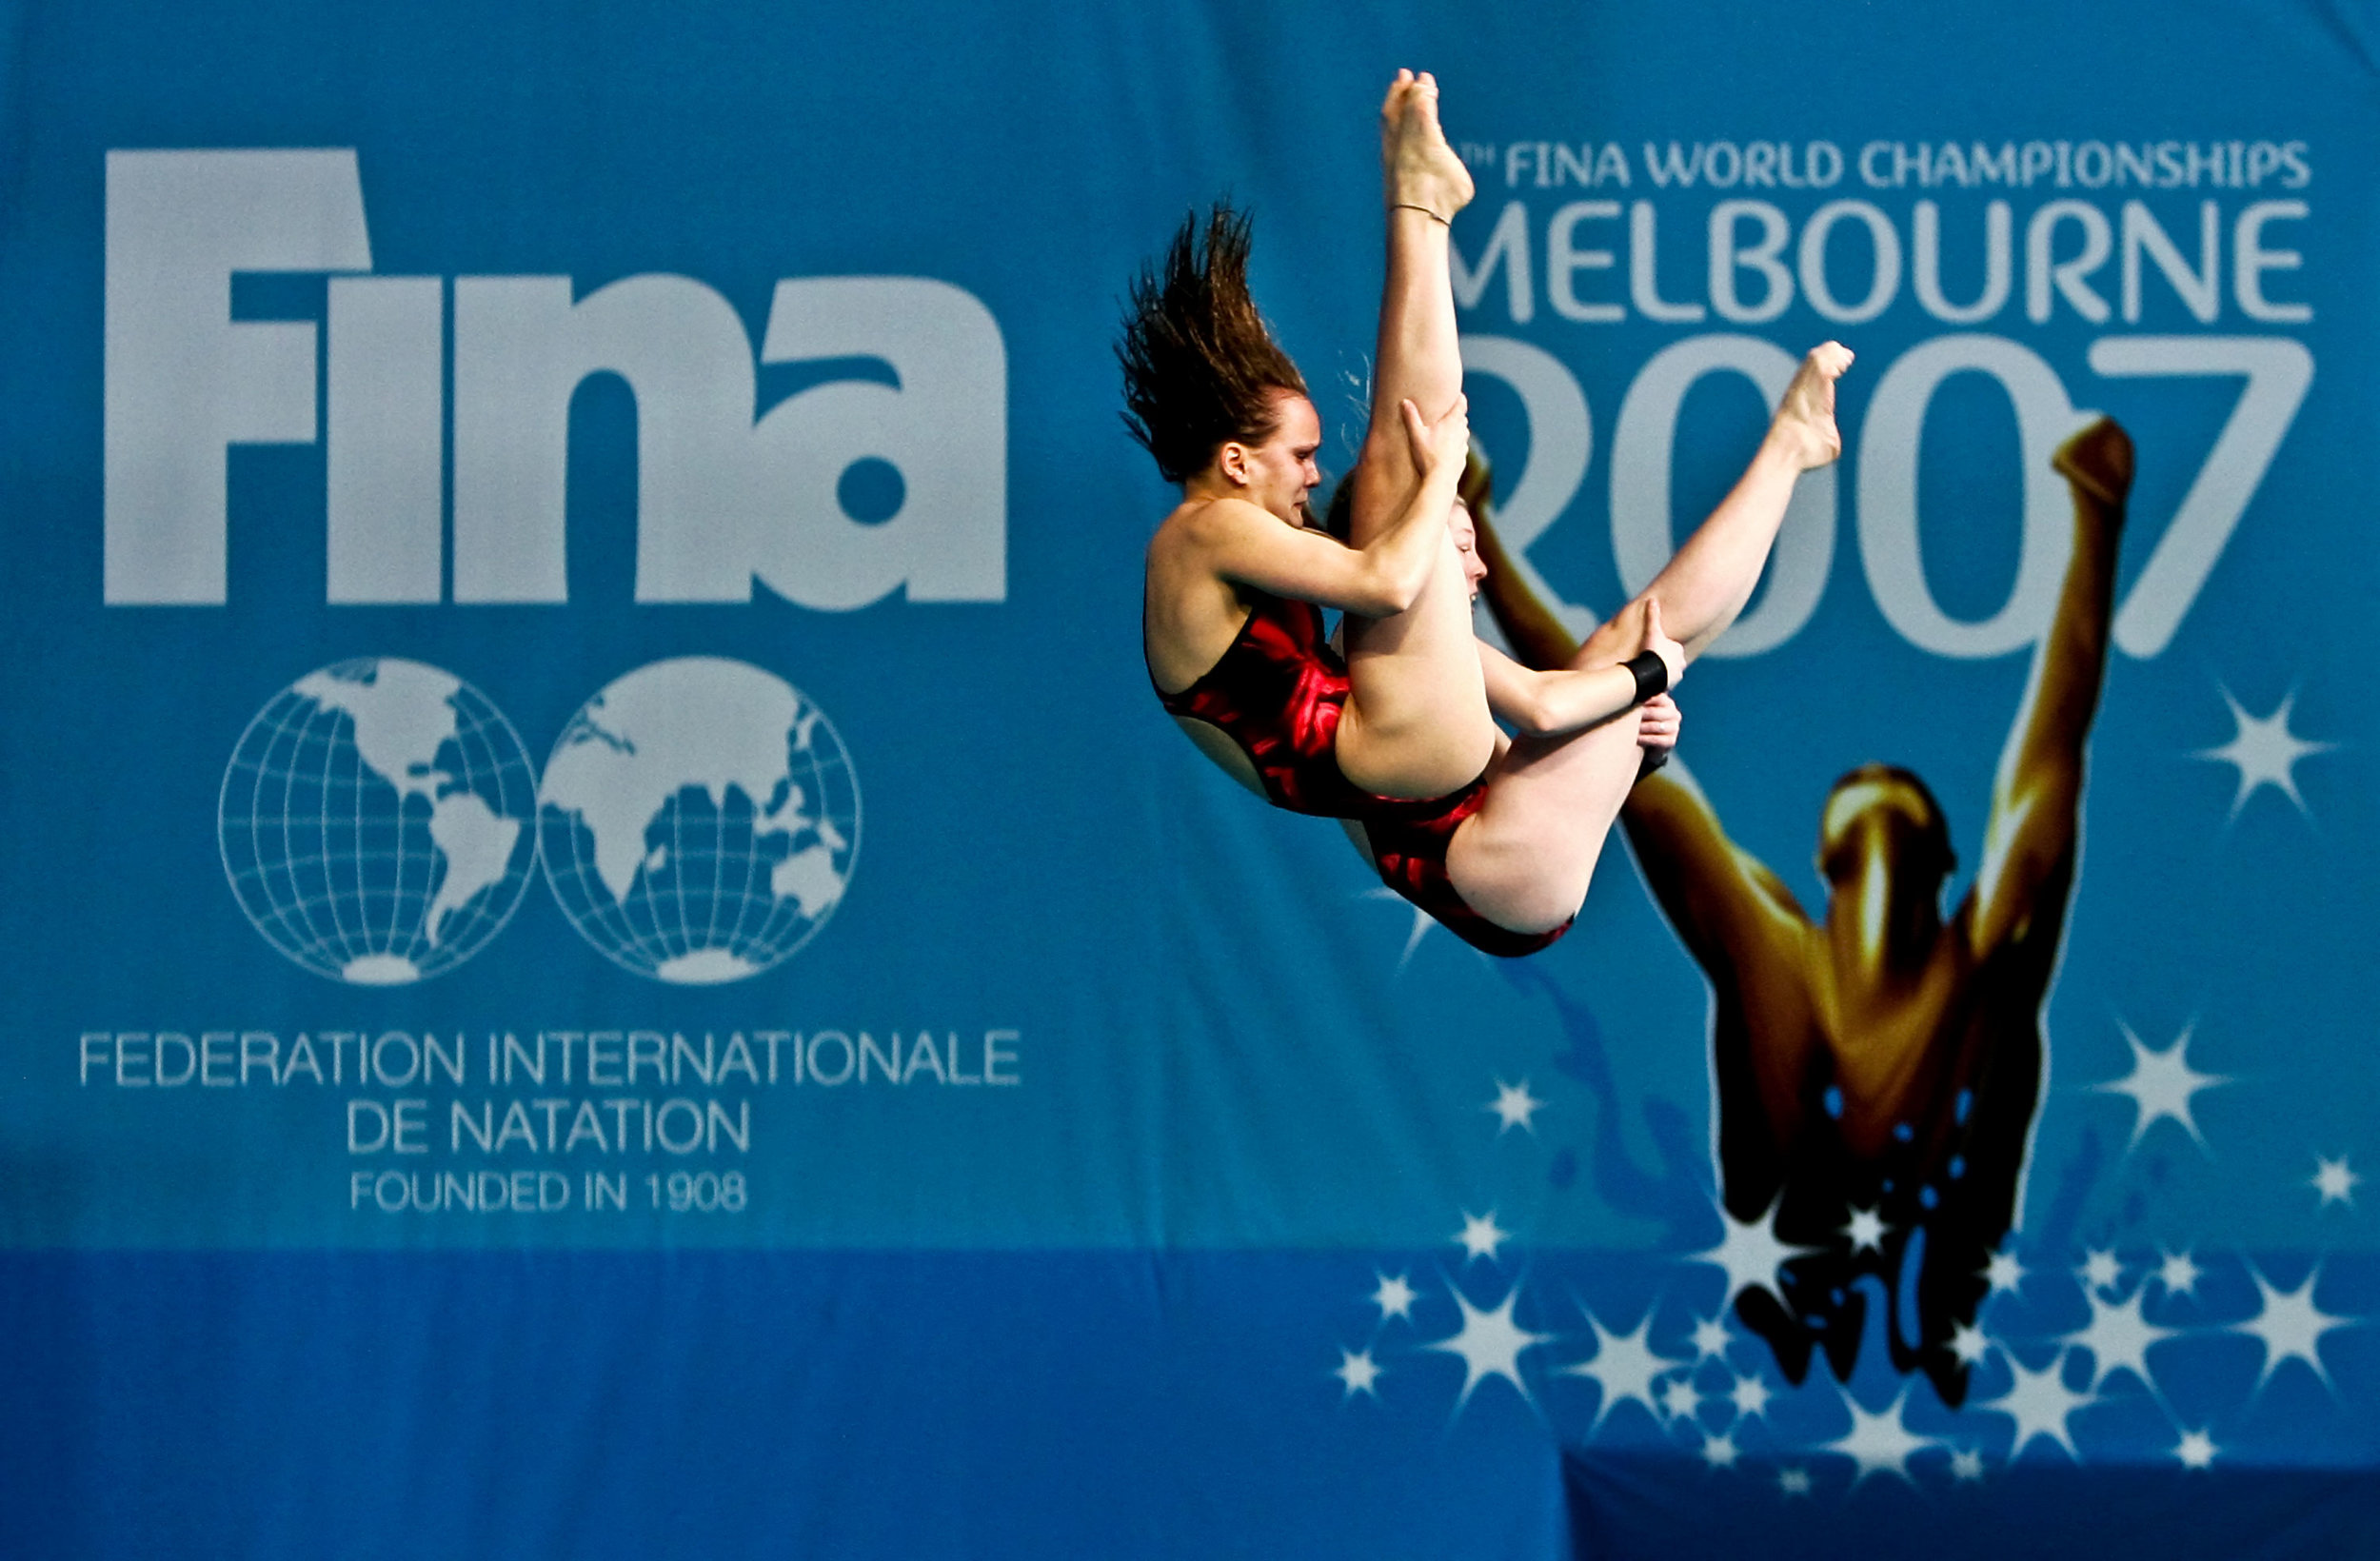 Diving-2007-World-Aquatics-Championships.jpg